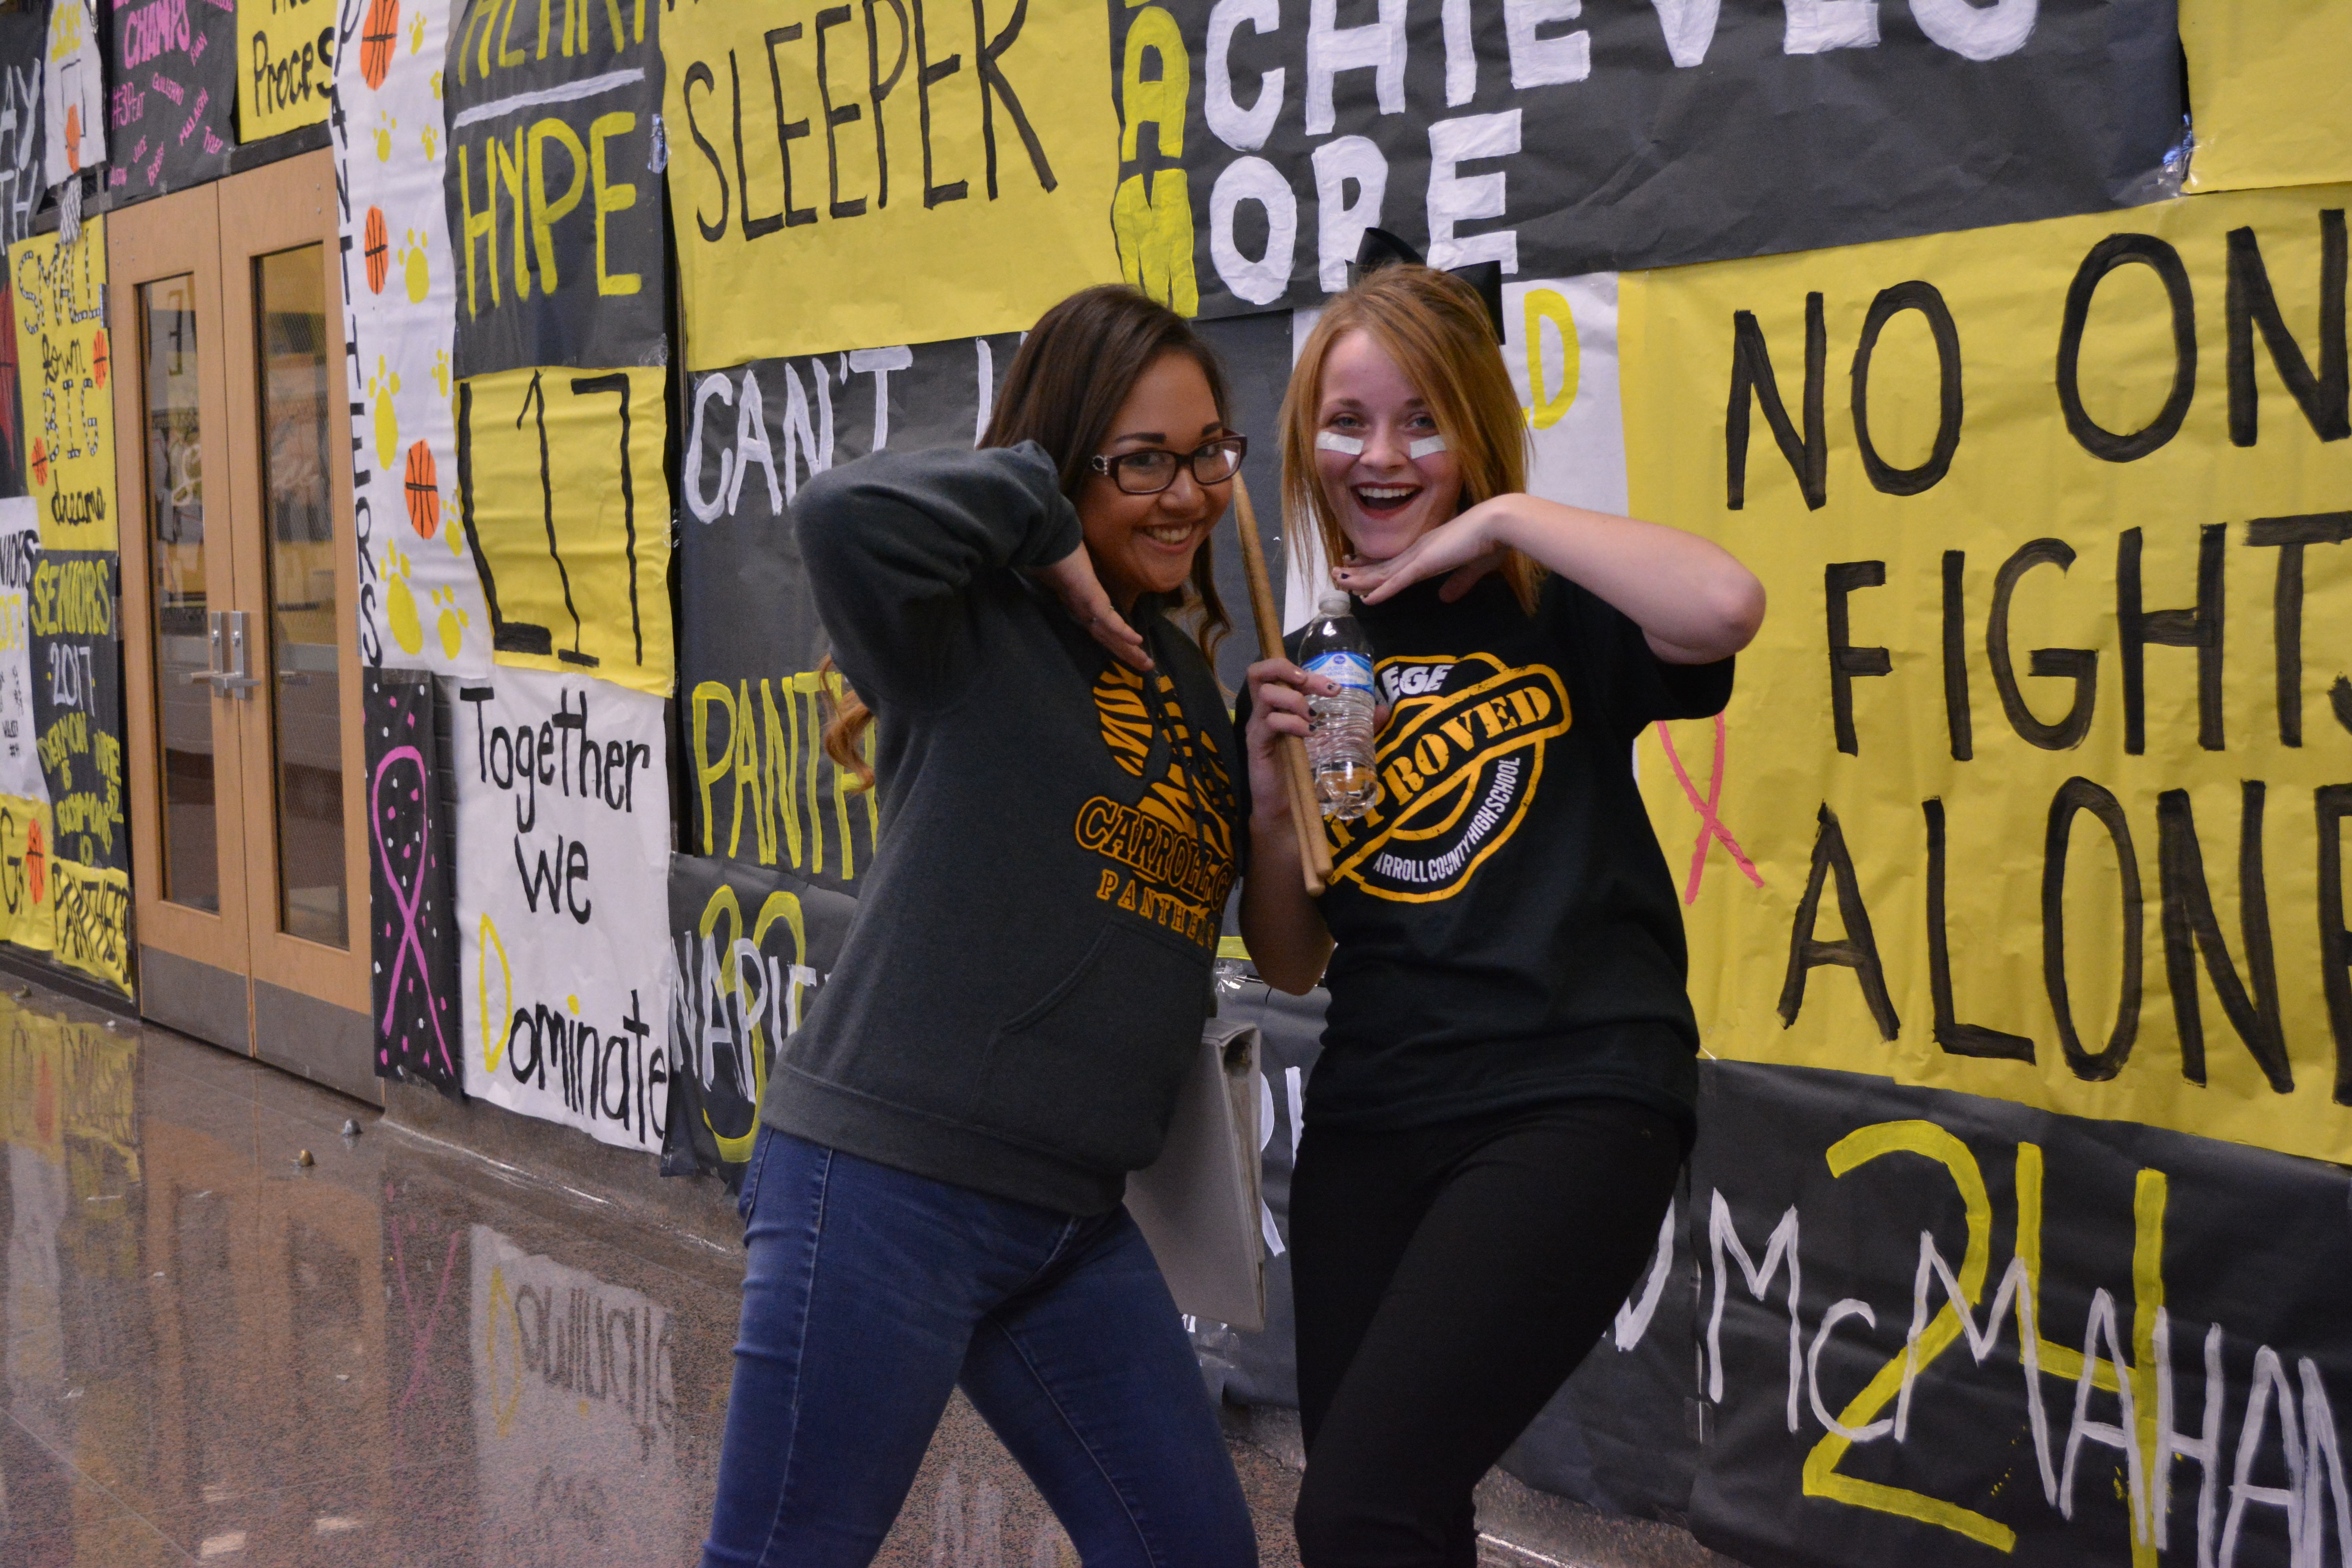 Two students dressed in black and gold